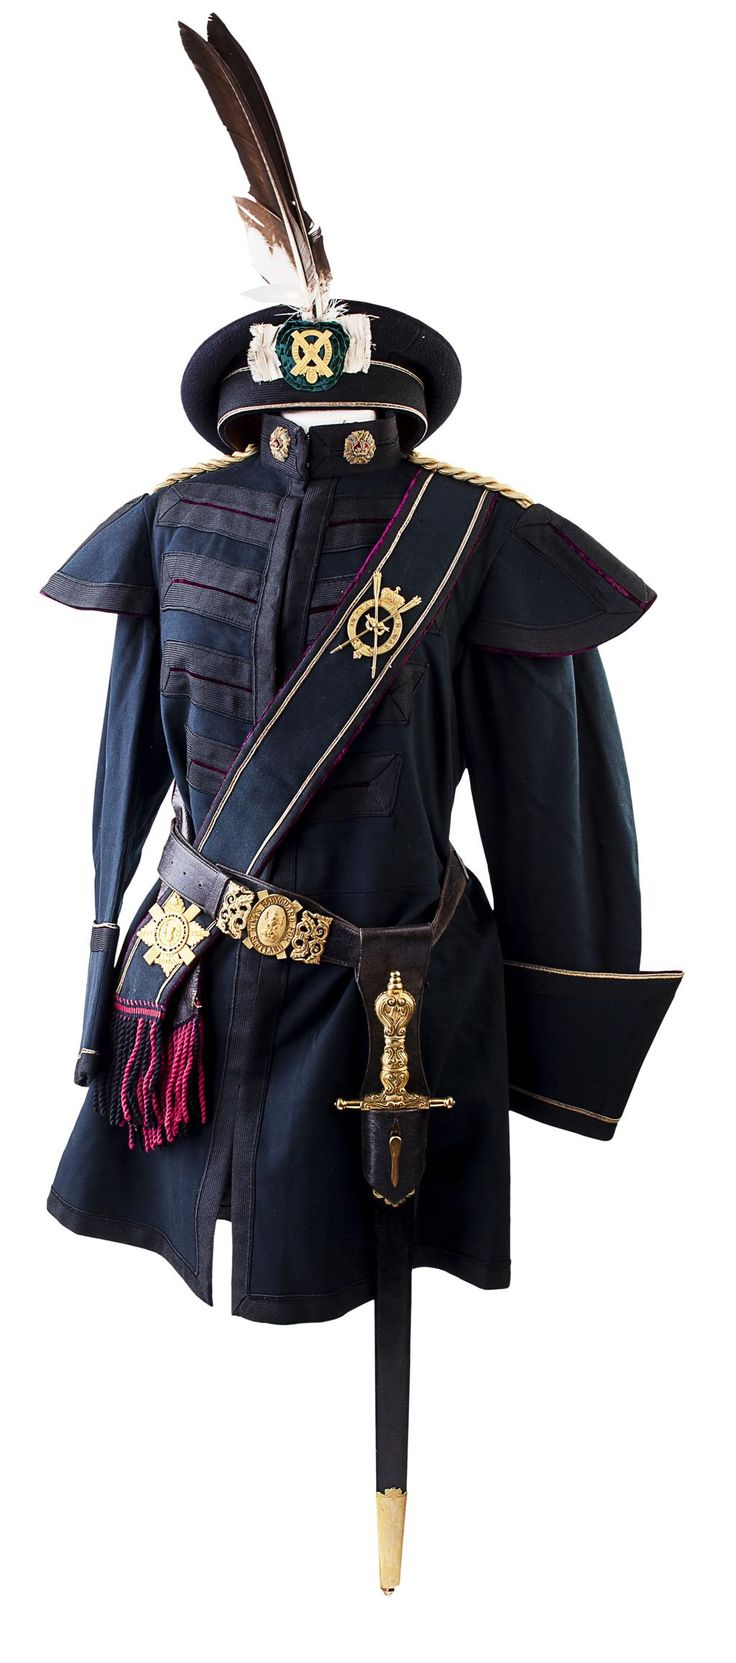 Uniform of the Royal Company of Archers, the bodyguard to the monarch when in residence at Holyrood.